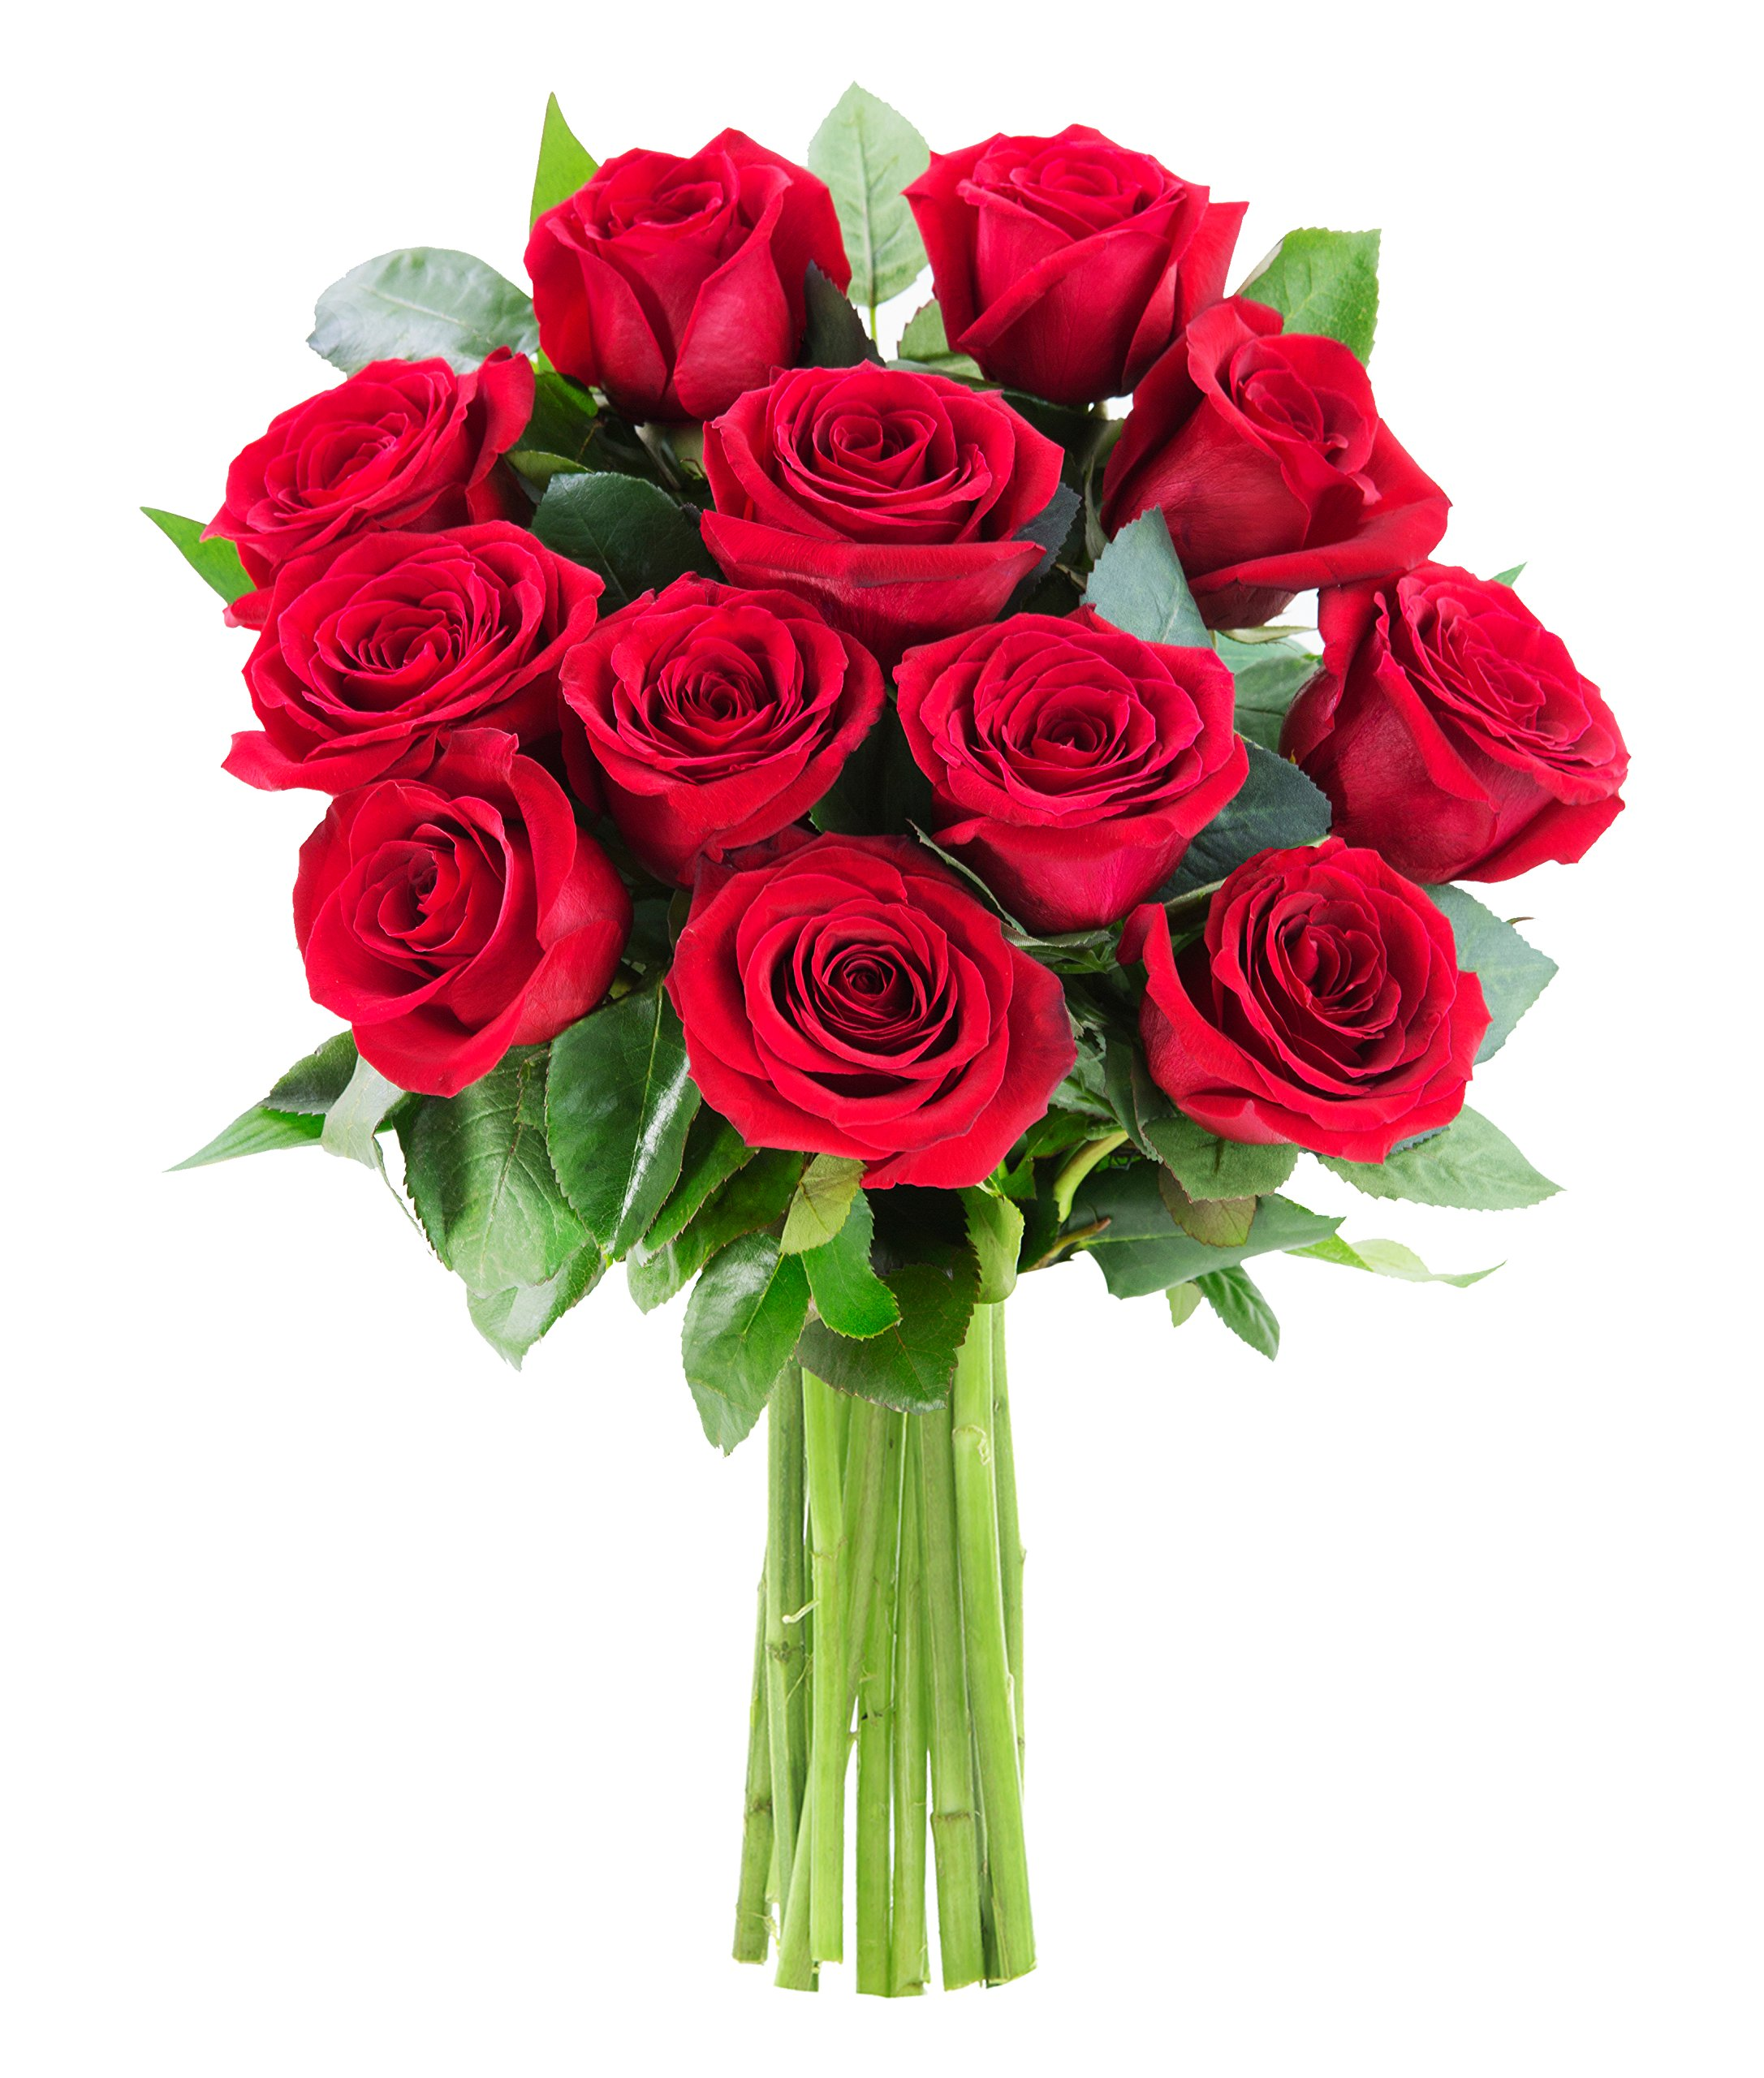 KaBloom The Romantic Classic Bouquet of 12 Fresh Red Roses (Farm-Fresh, Long-Stem)